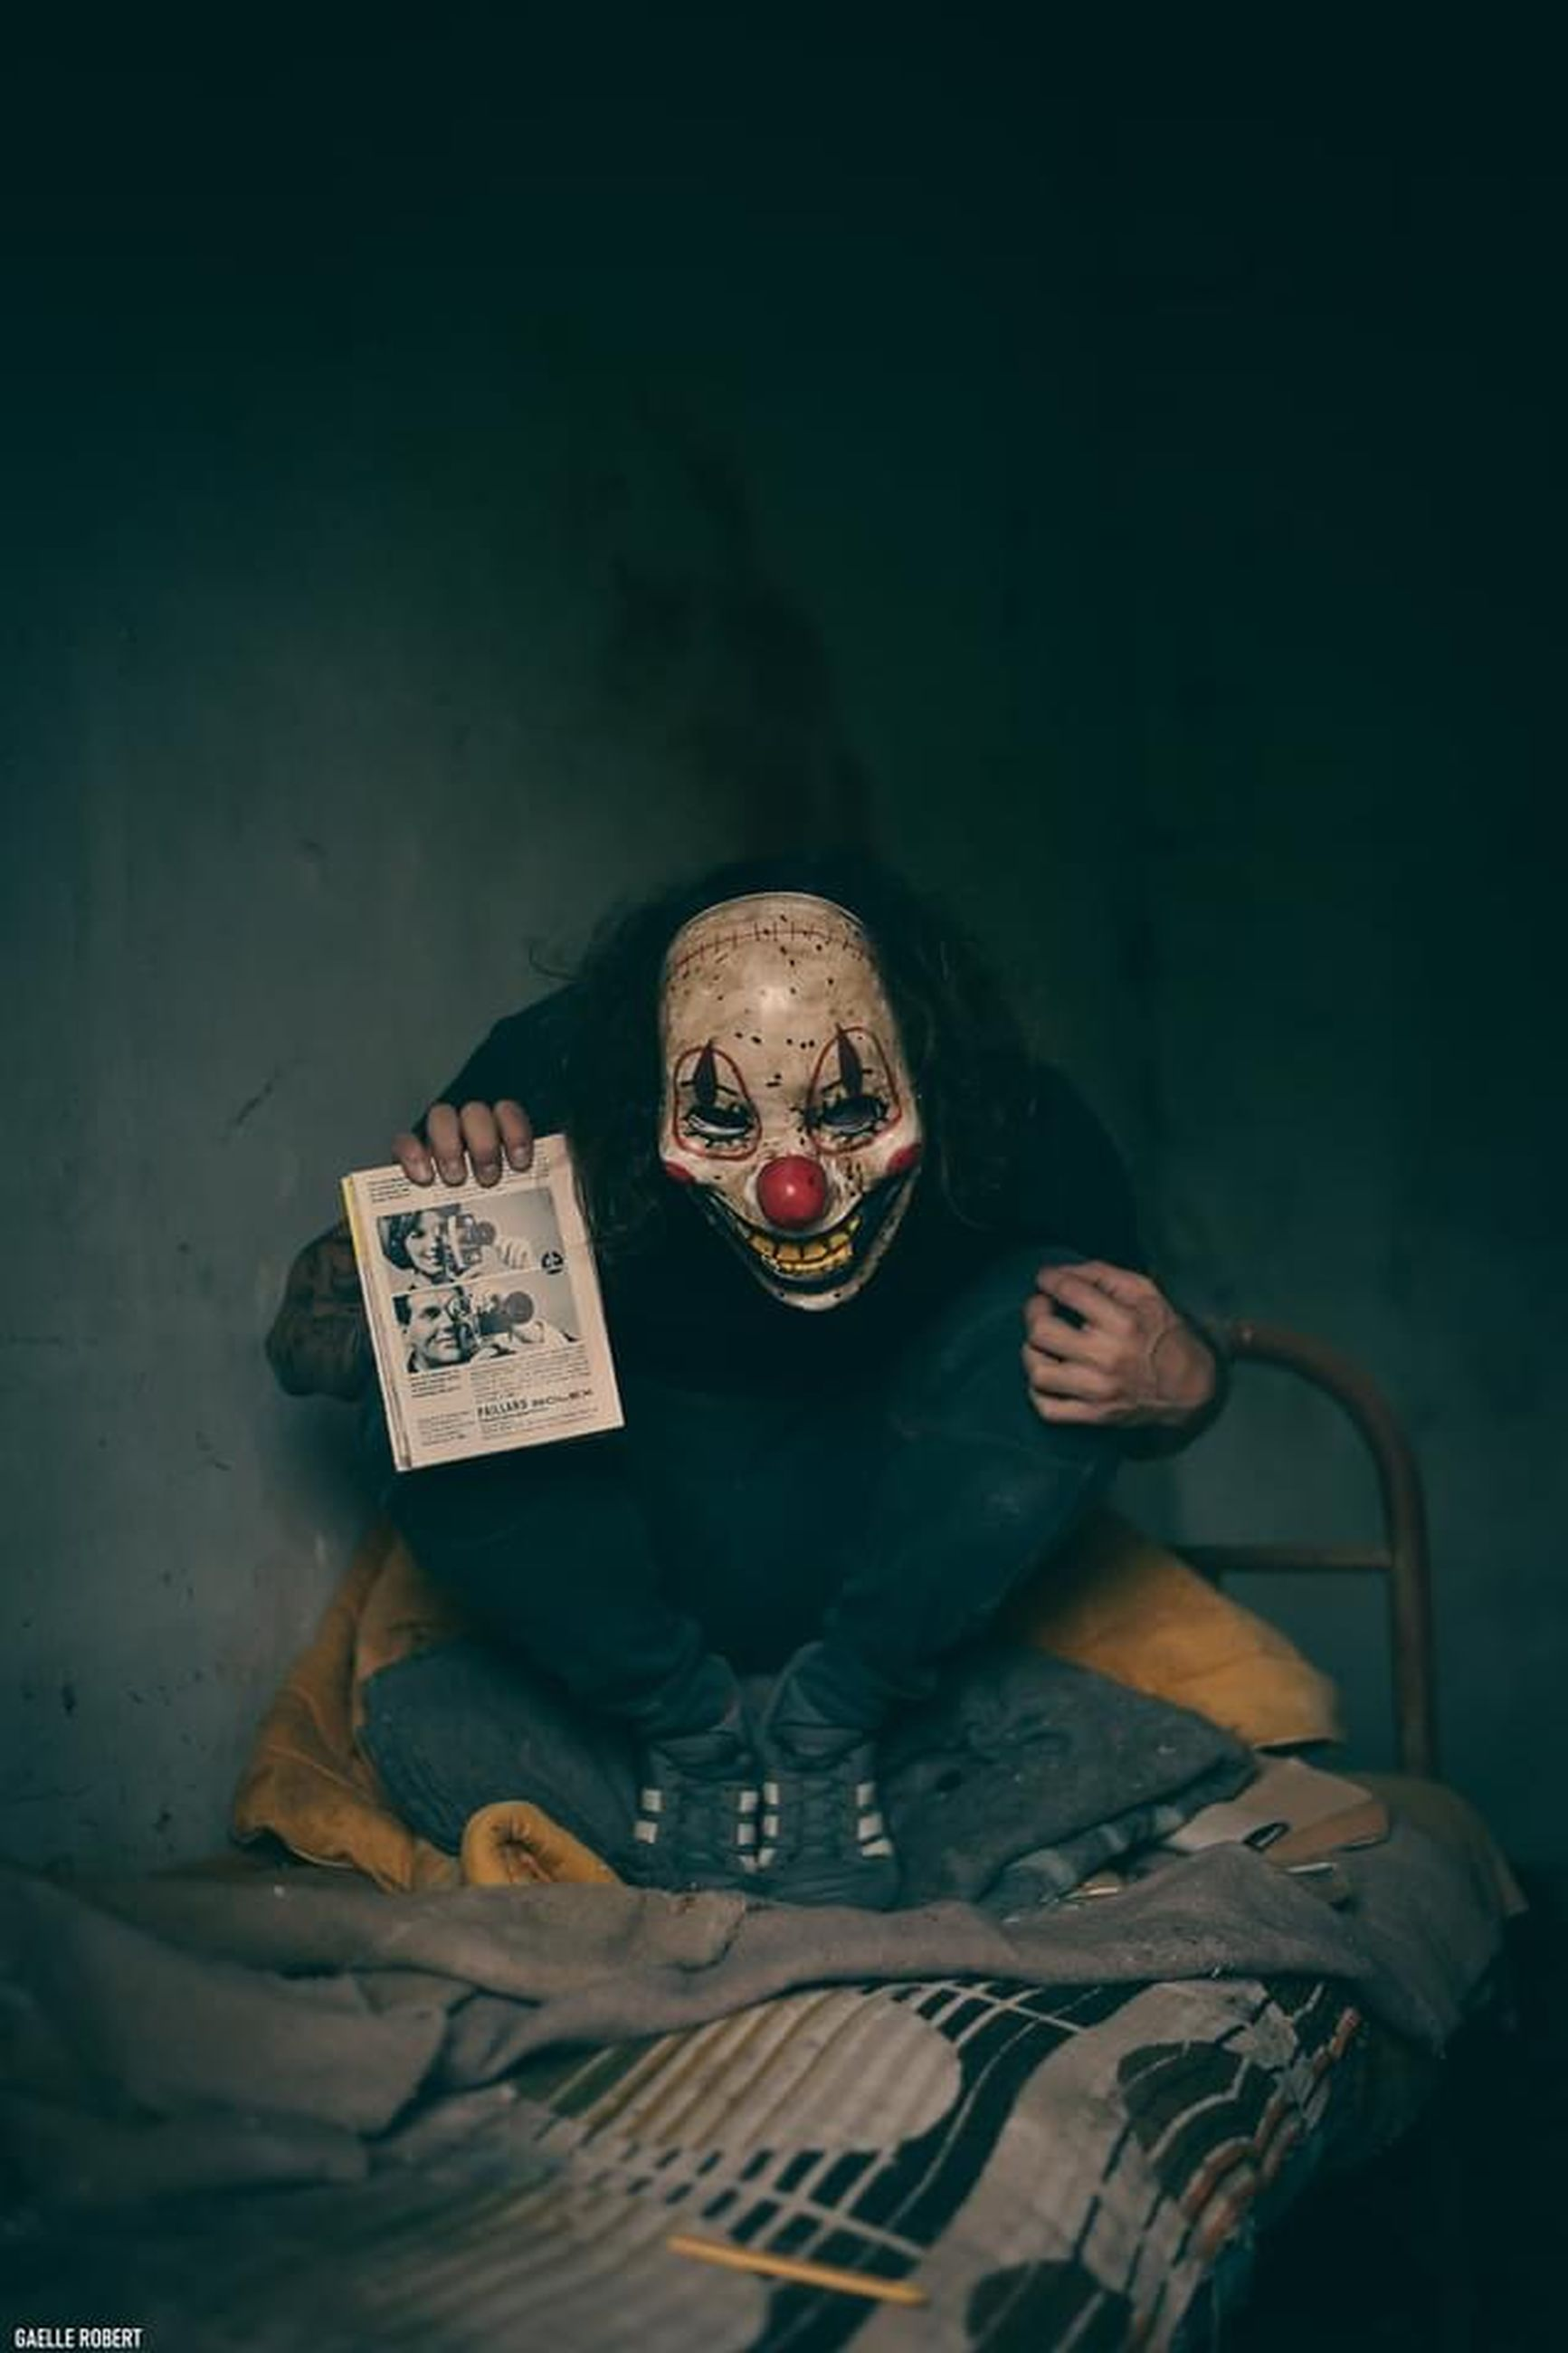 darkness, spooky, fear, one person, horror, indoors, adult, portrait, men, halloween, monster - fictional character, front view, evil, communication, dark, looking at camera, emotion, human skeleton, mask, shock, disguise, human skull, sitting, surprise, celebration, sign, poster, mask - disguise, mystery